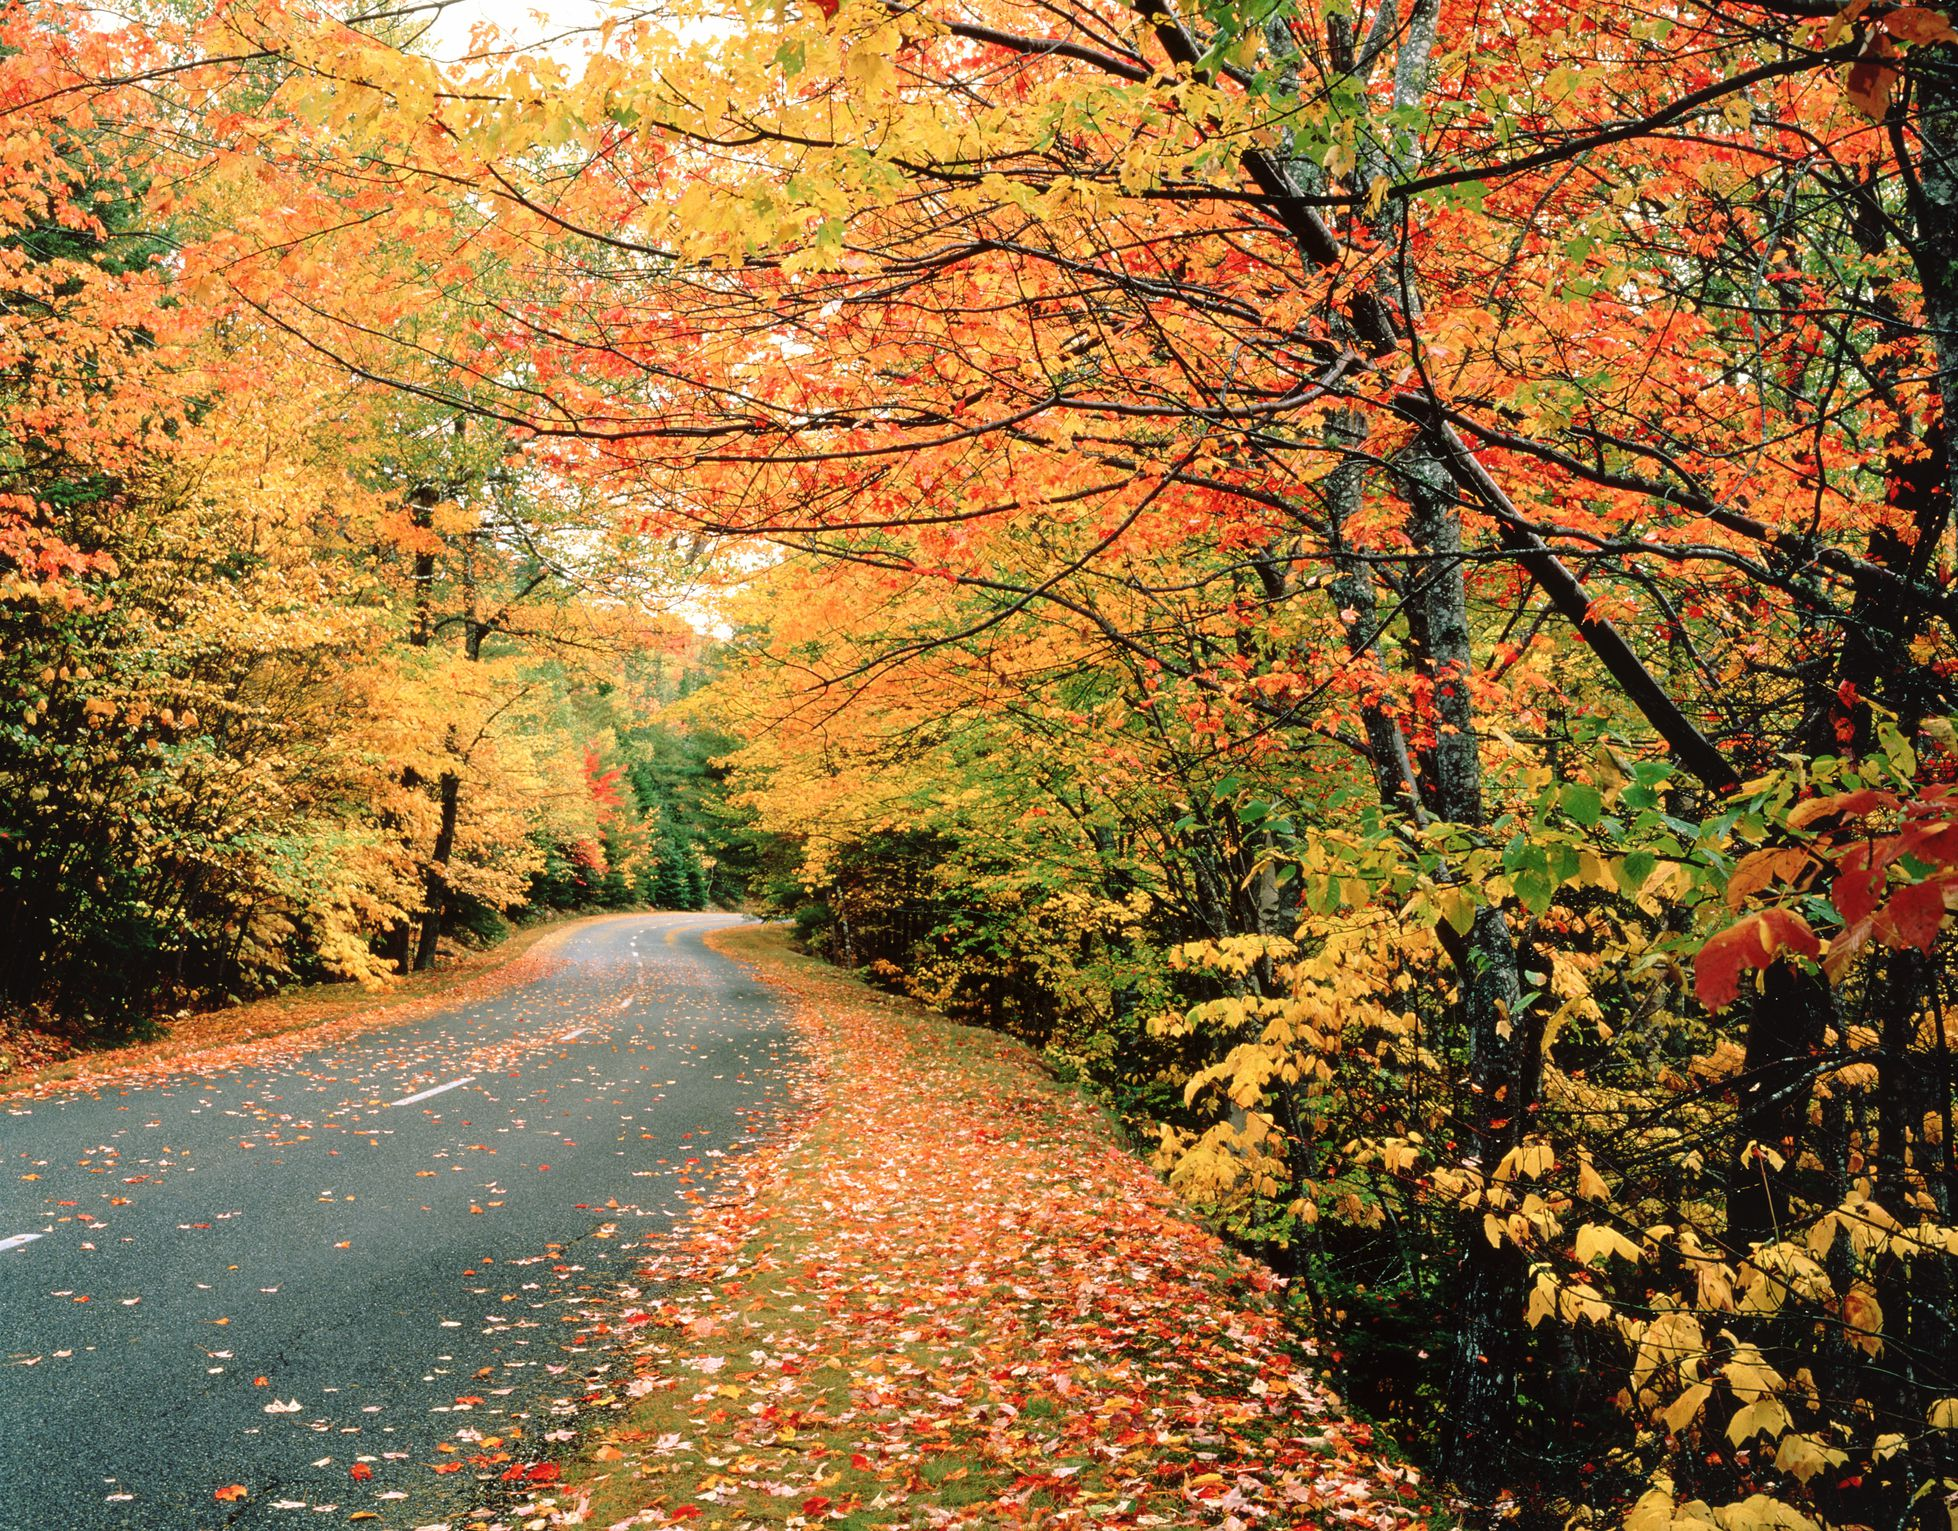 12 Amazing Trips to Take This Fall to Avoid Big Crowds